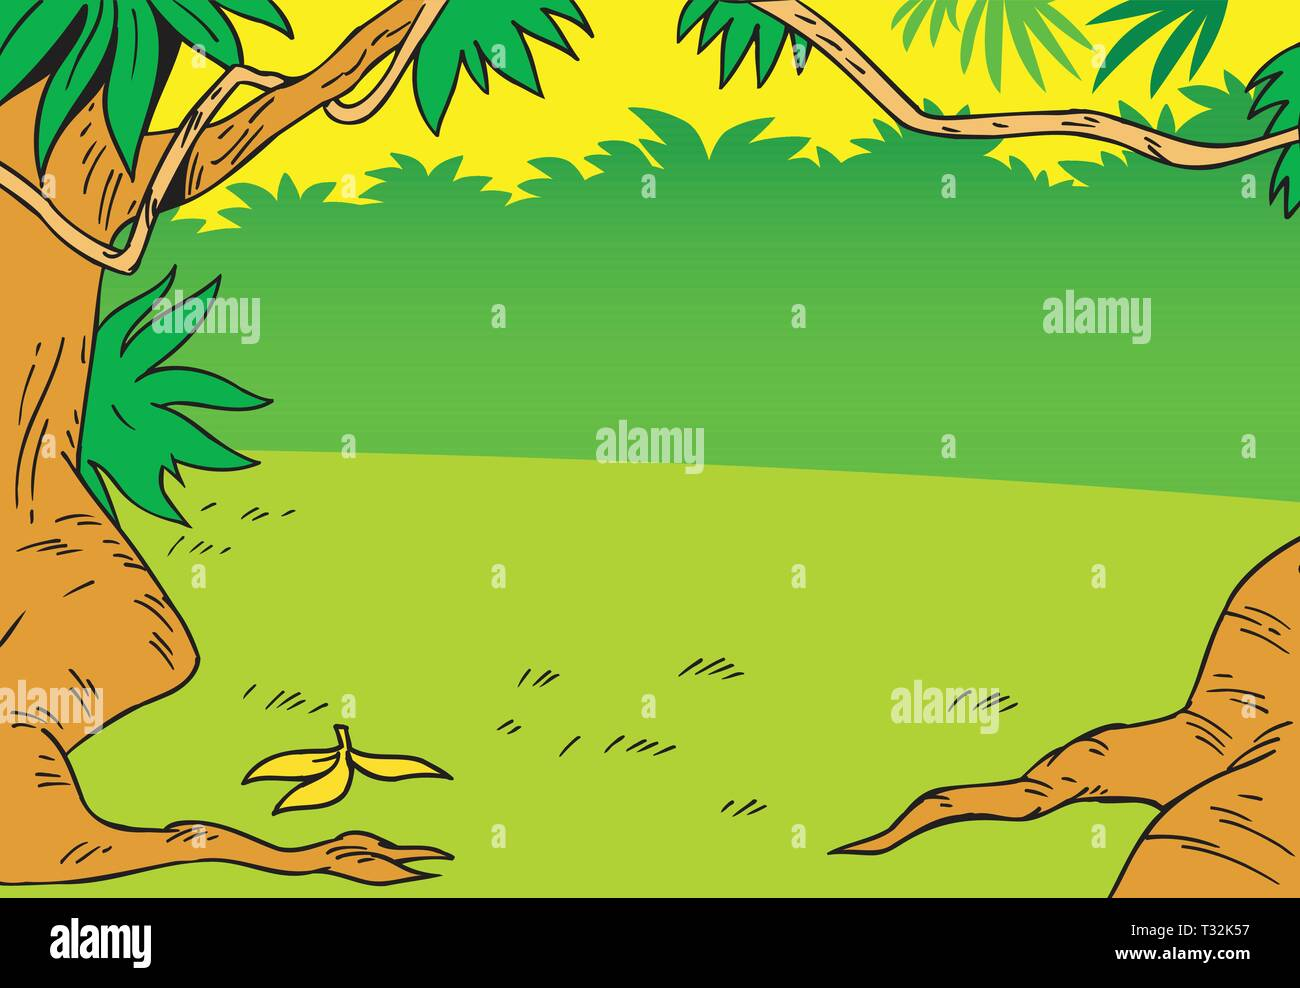 Cartoon Background With Glade In The Jungle Stock Vector Image Art Alamy